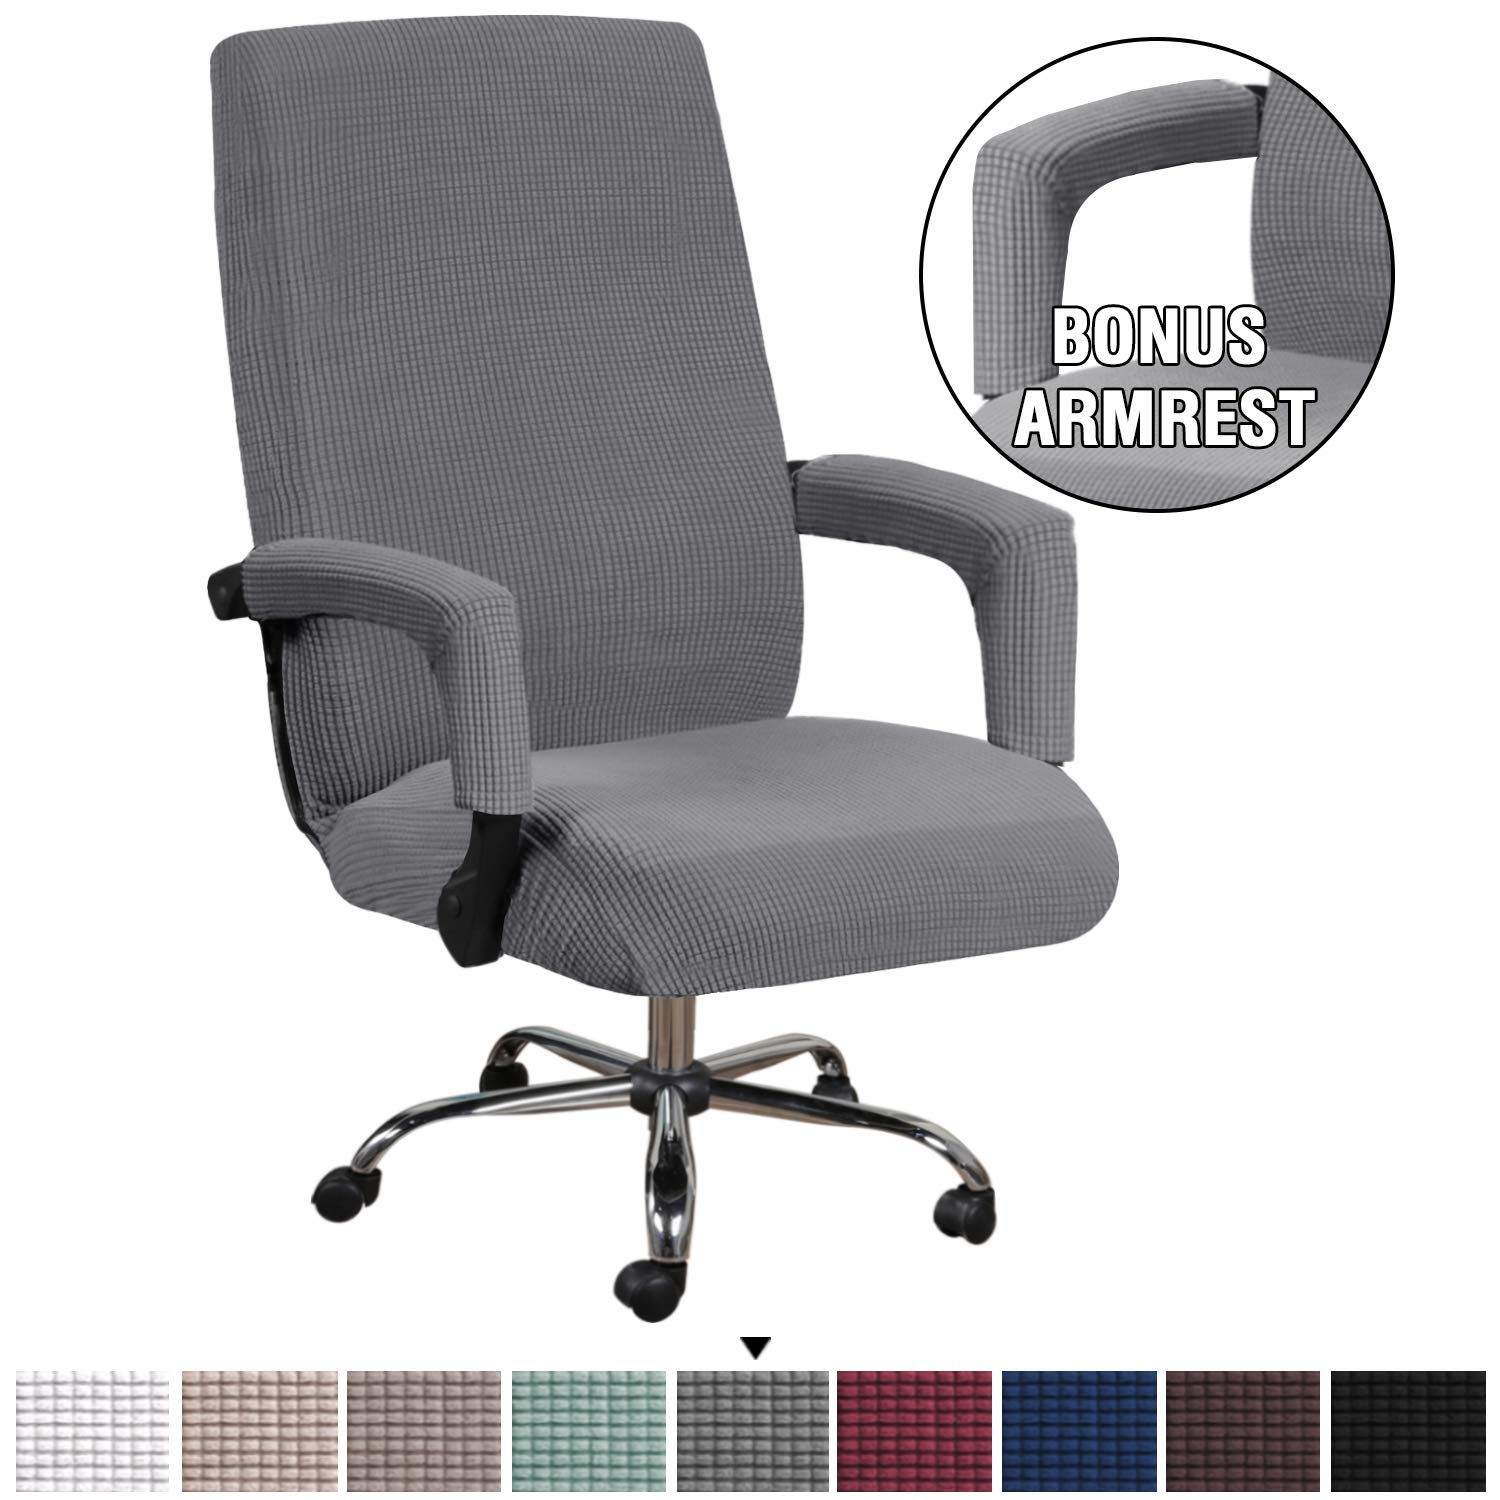 Office Furniture Lighting Chocolate Brown Skid Resistant Office Computer Chair Cover With Arm Covers Oversized Office Chair Covers High Back Slipcovers Stretch Furniture Cover Lycra Spandex Jacquard Fabric Super Soft Office